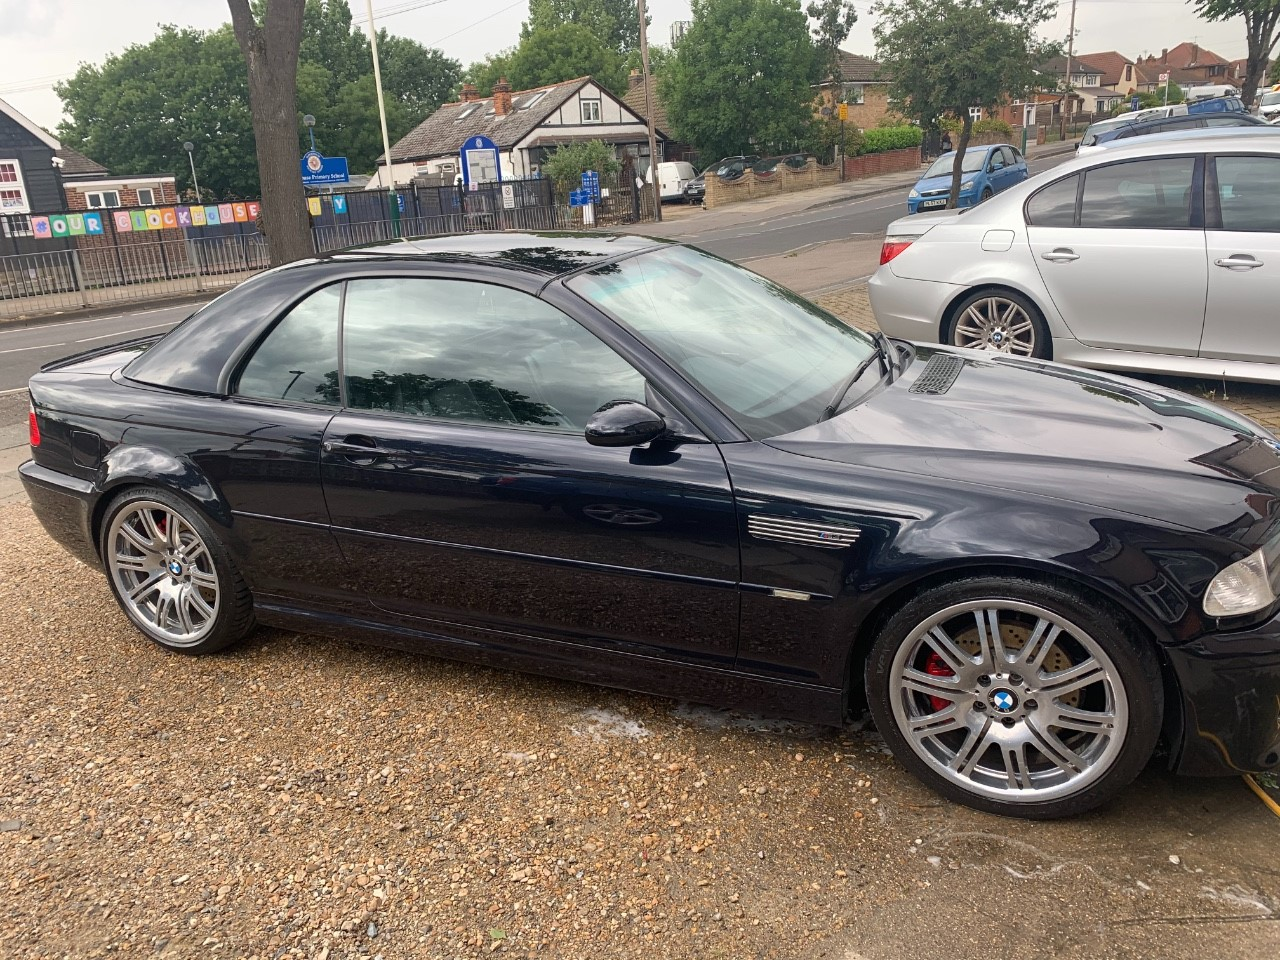 Bmw E46 2004 Carbon Black For Sale For 12 650 Cutters Classifieds